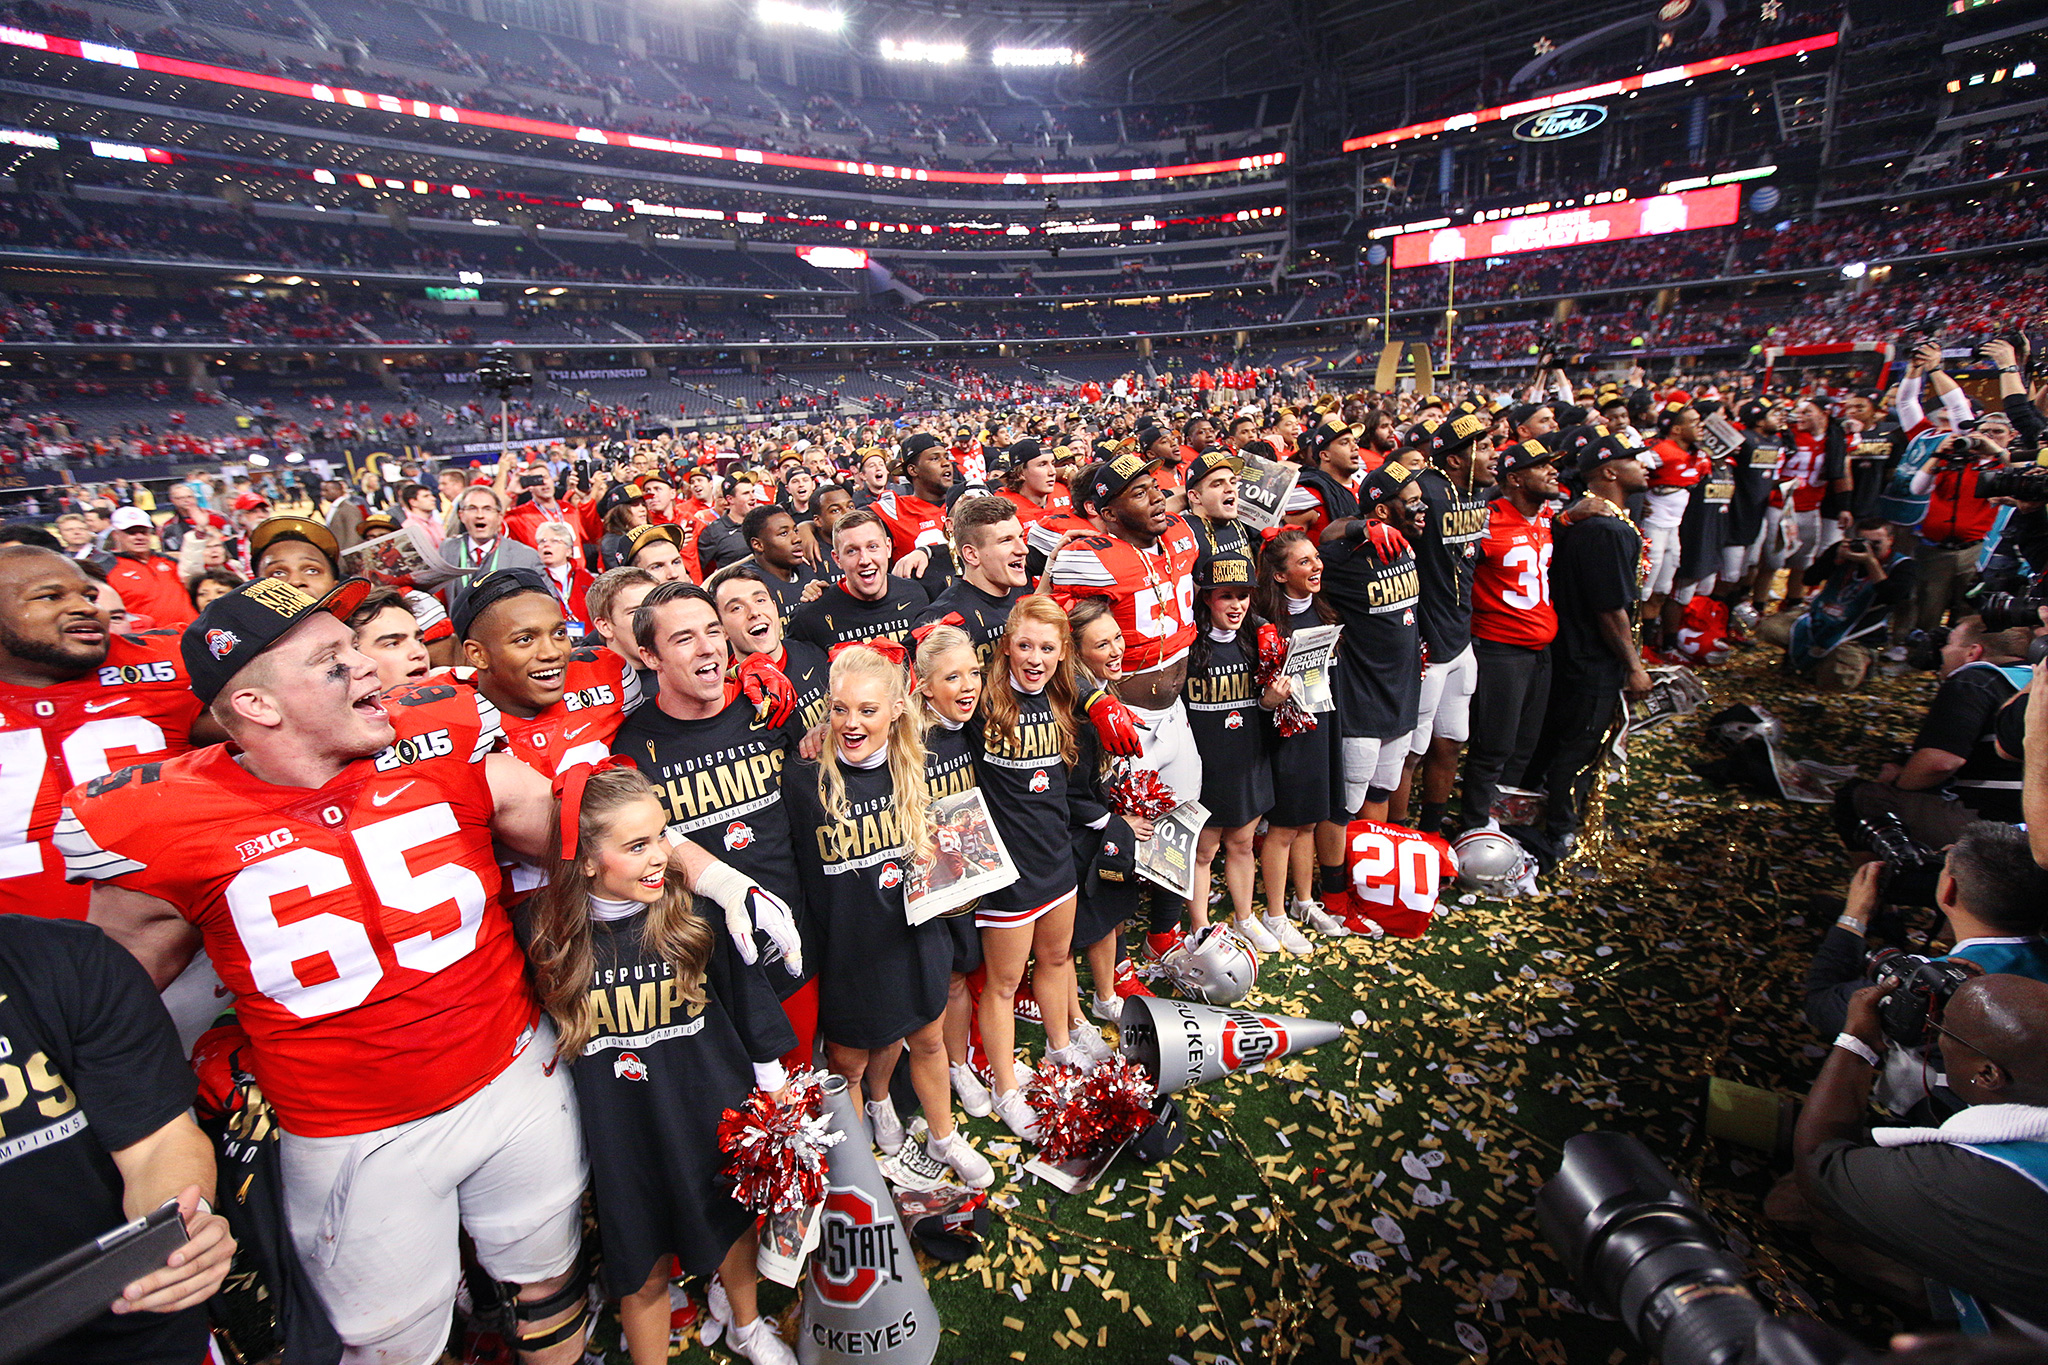 2015 national football championship espn.com college football scores